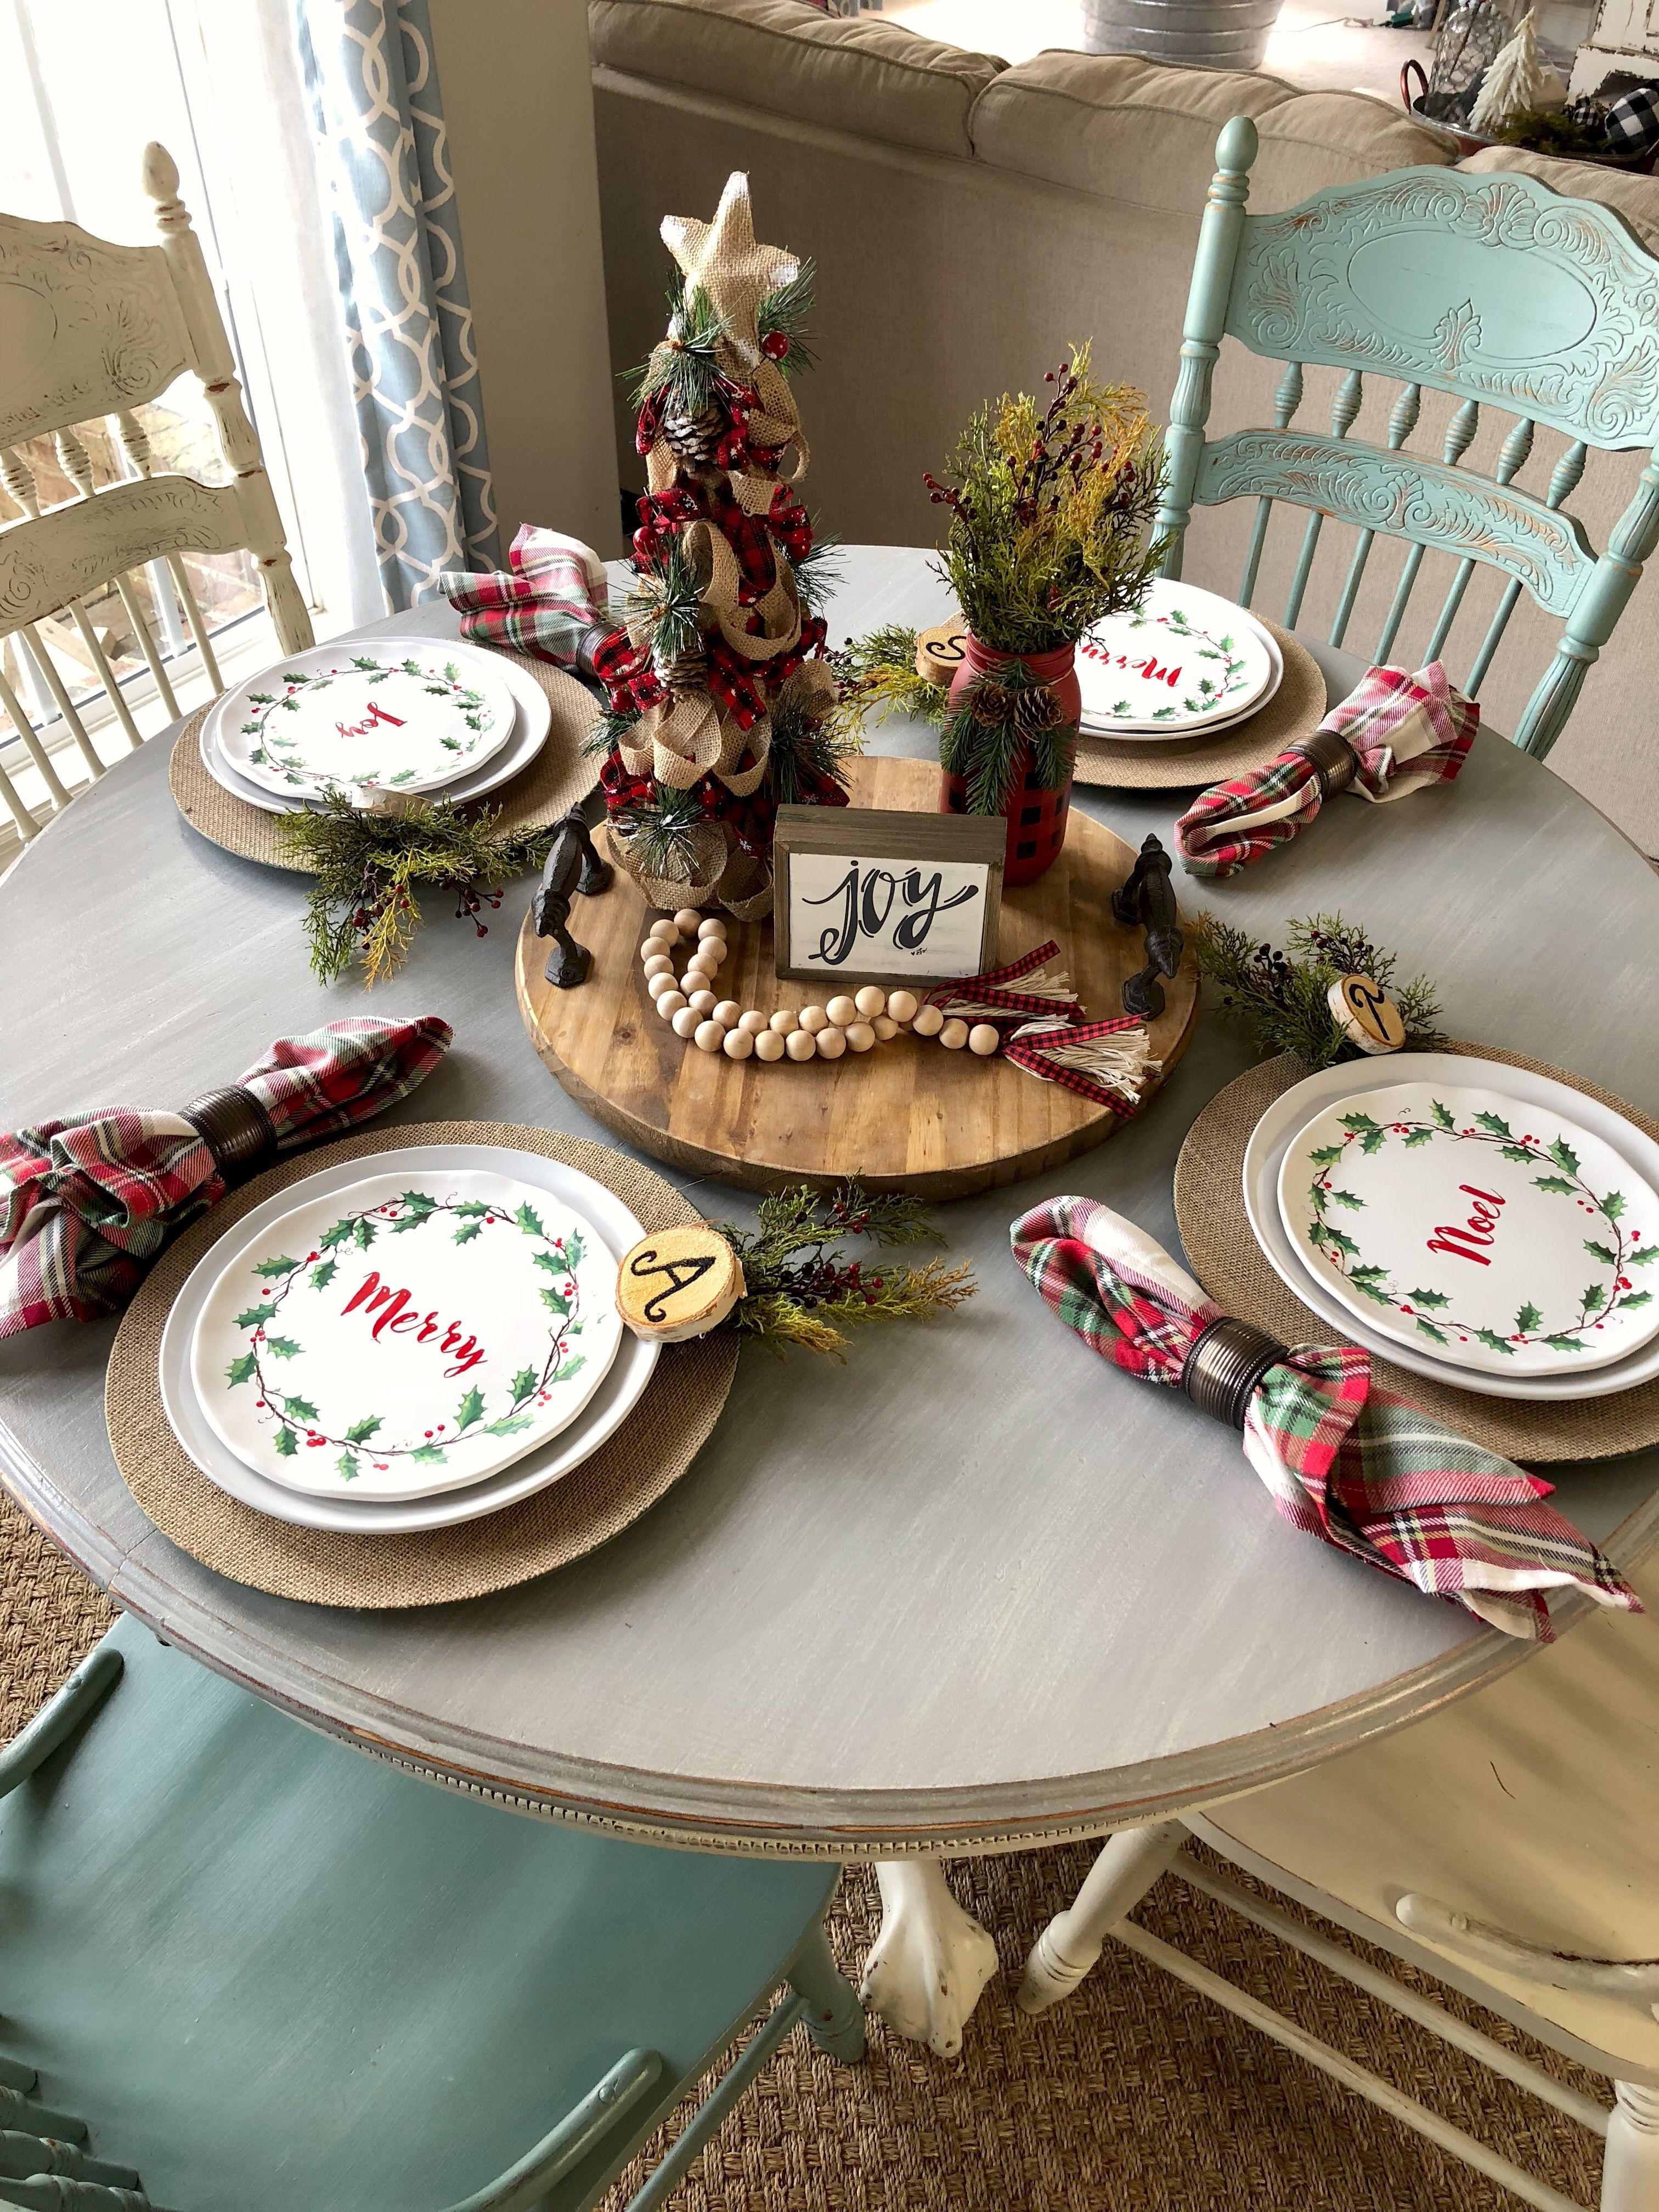 How To Put Together An Easy Christmas Table Setting That S Cute And Creative Christmas Table Settings Christmas Decorations Cheap Christmas Table